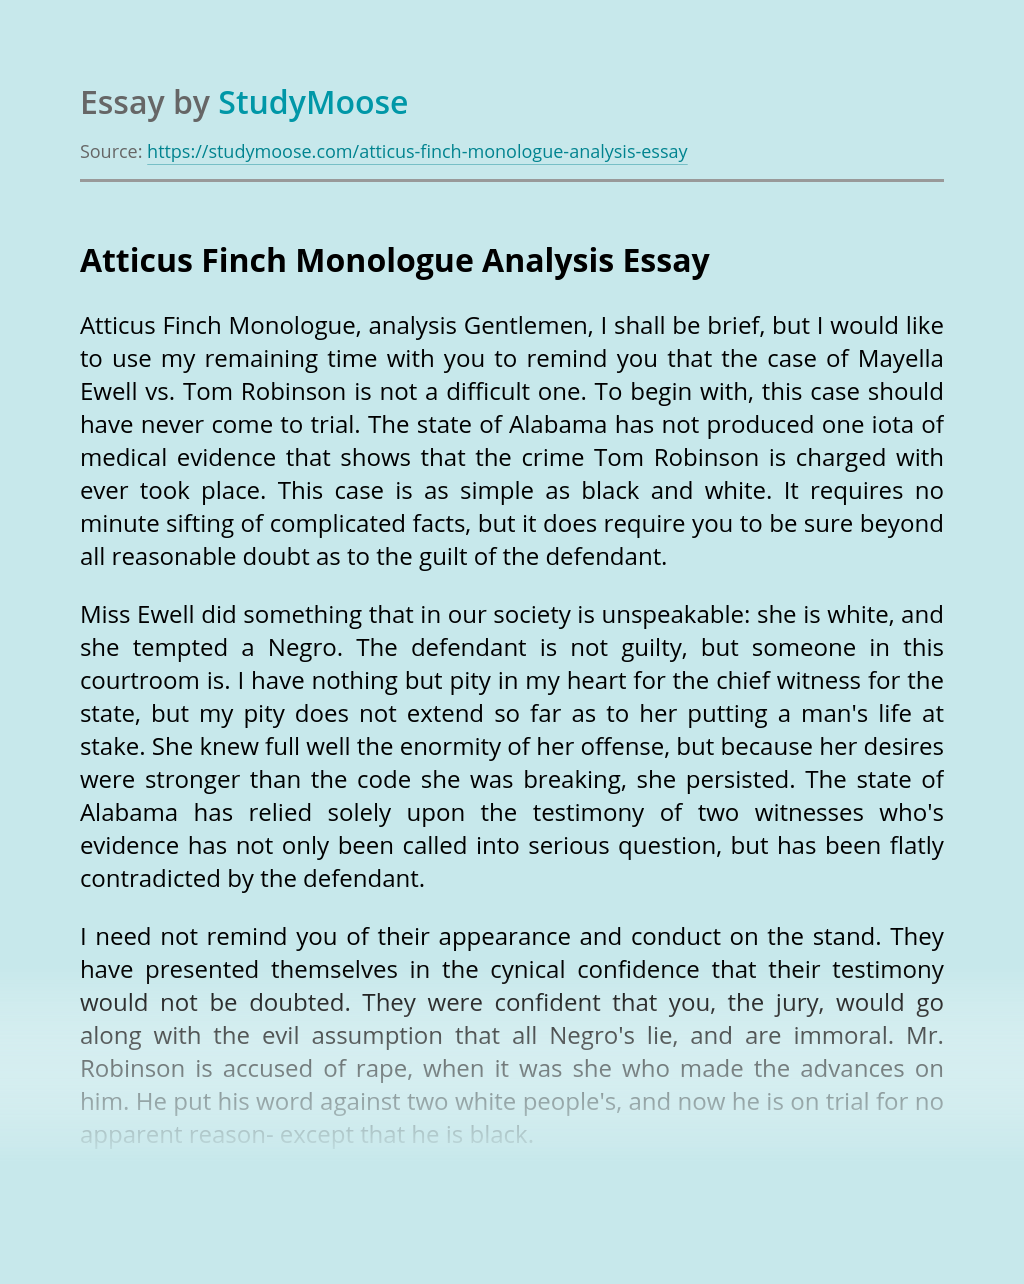 Atticus finch character analysis essay help with  philosophy book review